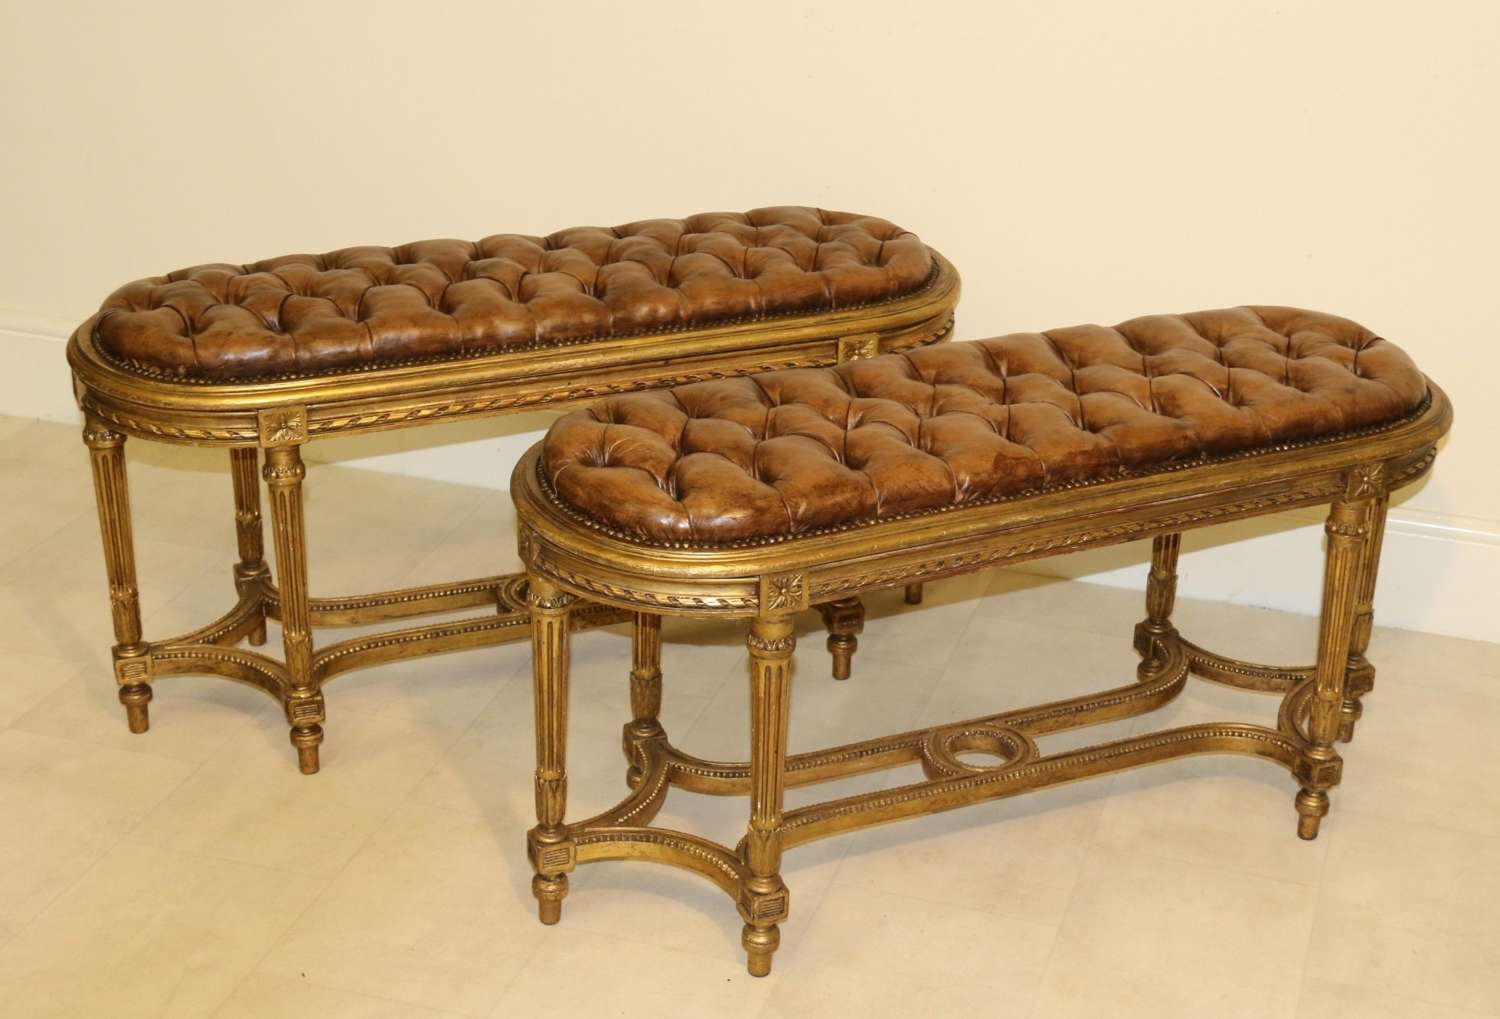 Pair Of 19 C French Carved Giltwood Window Seats Or Stools